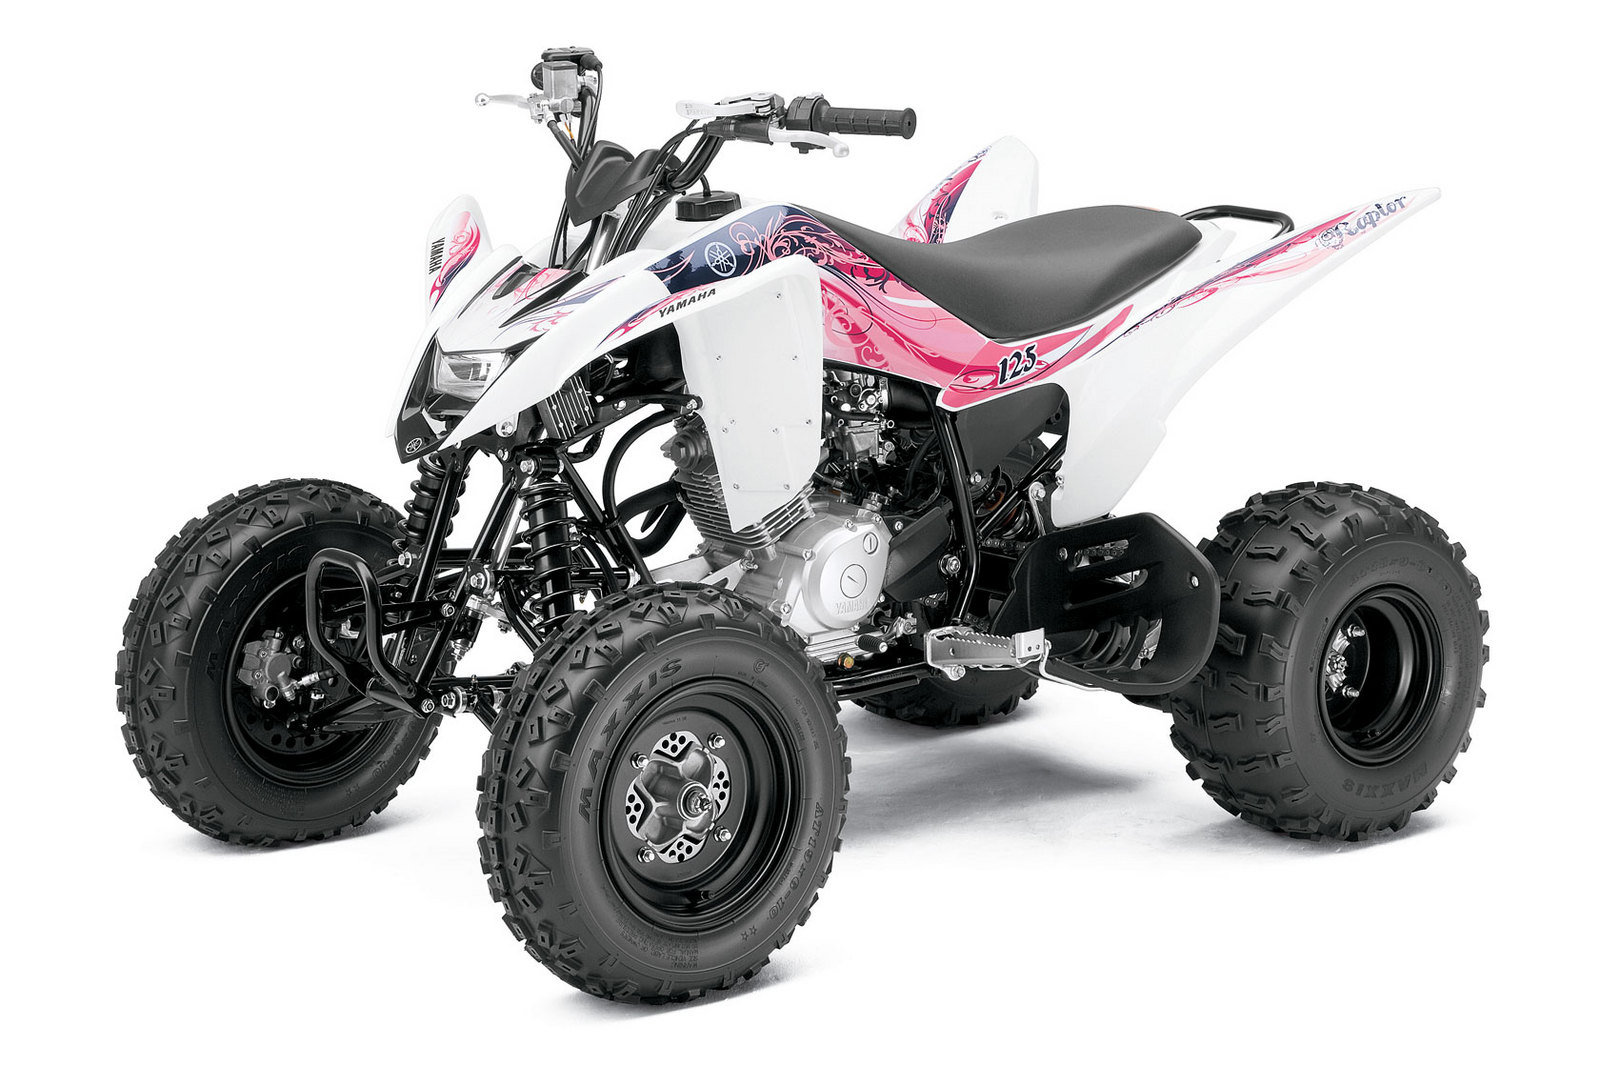 2011 yamaha raptor 125 review top speed. Black Bedroom Furniture Sets. Home Design Ideas